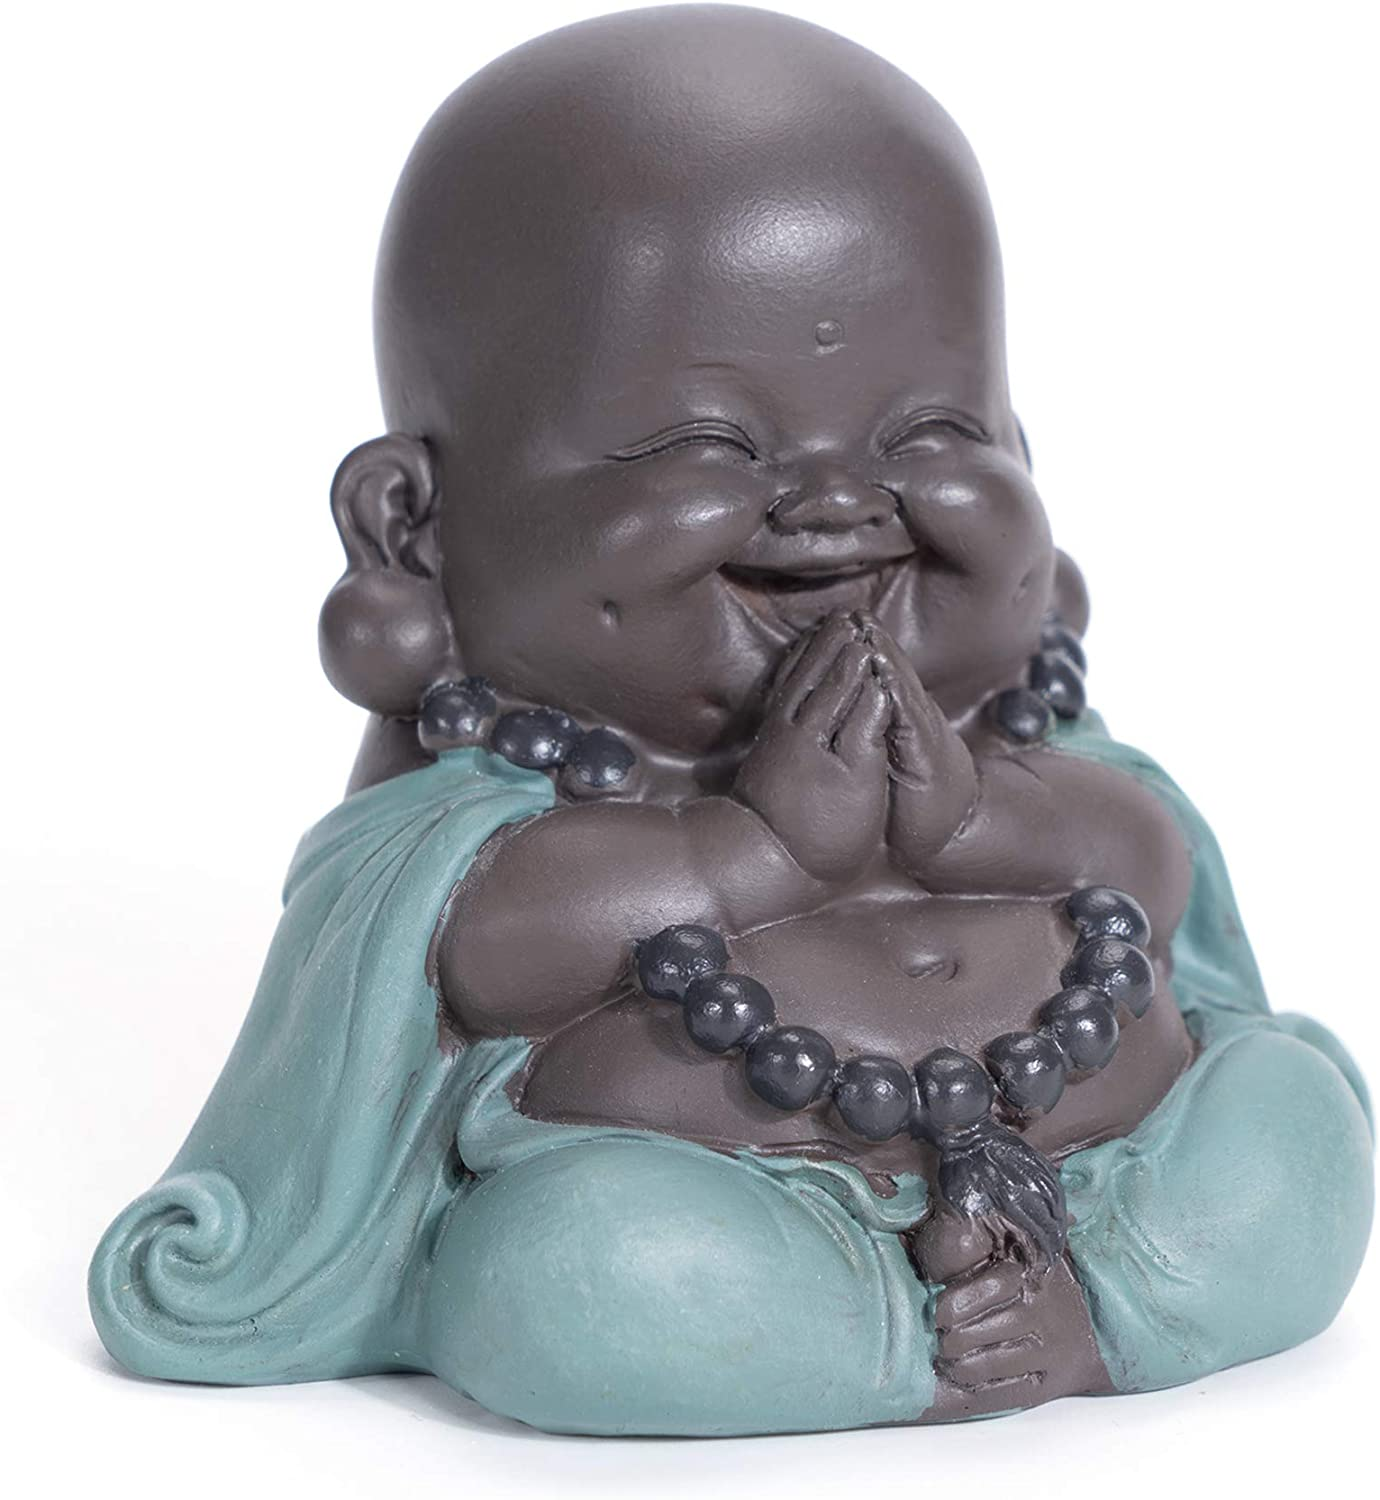 WGFKVAS Buddha Statue, Laughing Buddha Smiling Little Buddha Ceramic Buda Statue Little Monk Figurine Cute Baby Buddha for Home Office Car Decors Gift Crafts and Arts (Green)